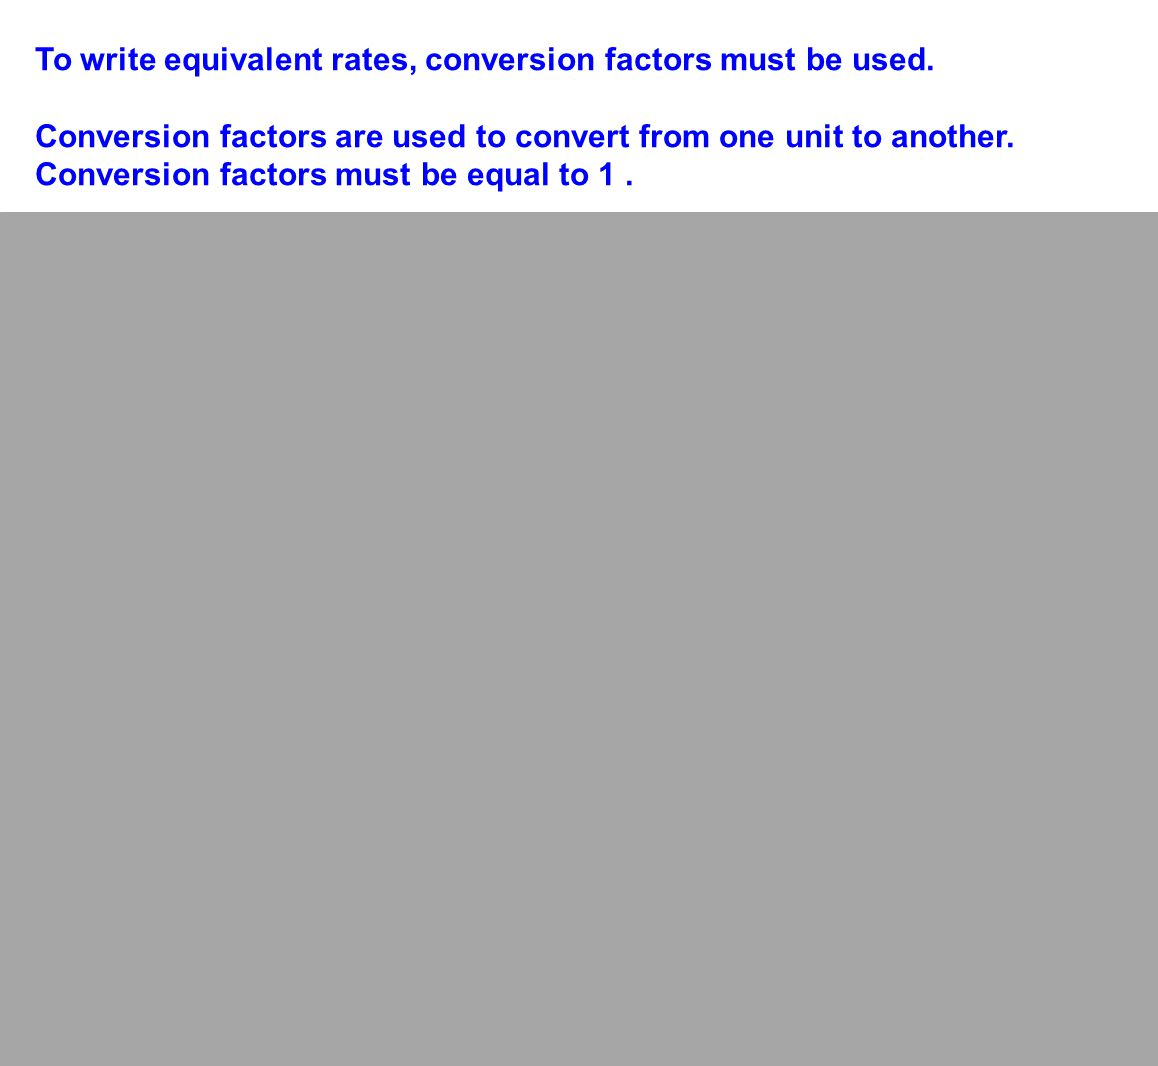 To write equivalent rates, conversion factors must be used.